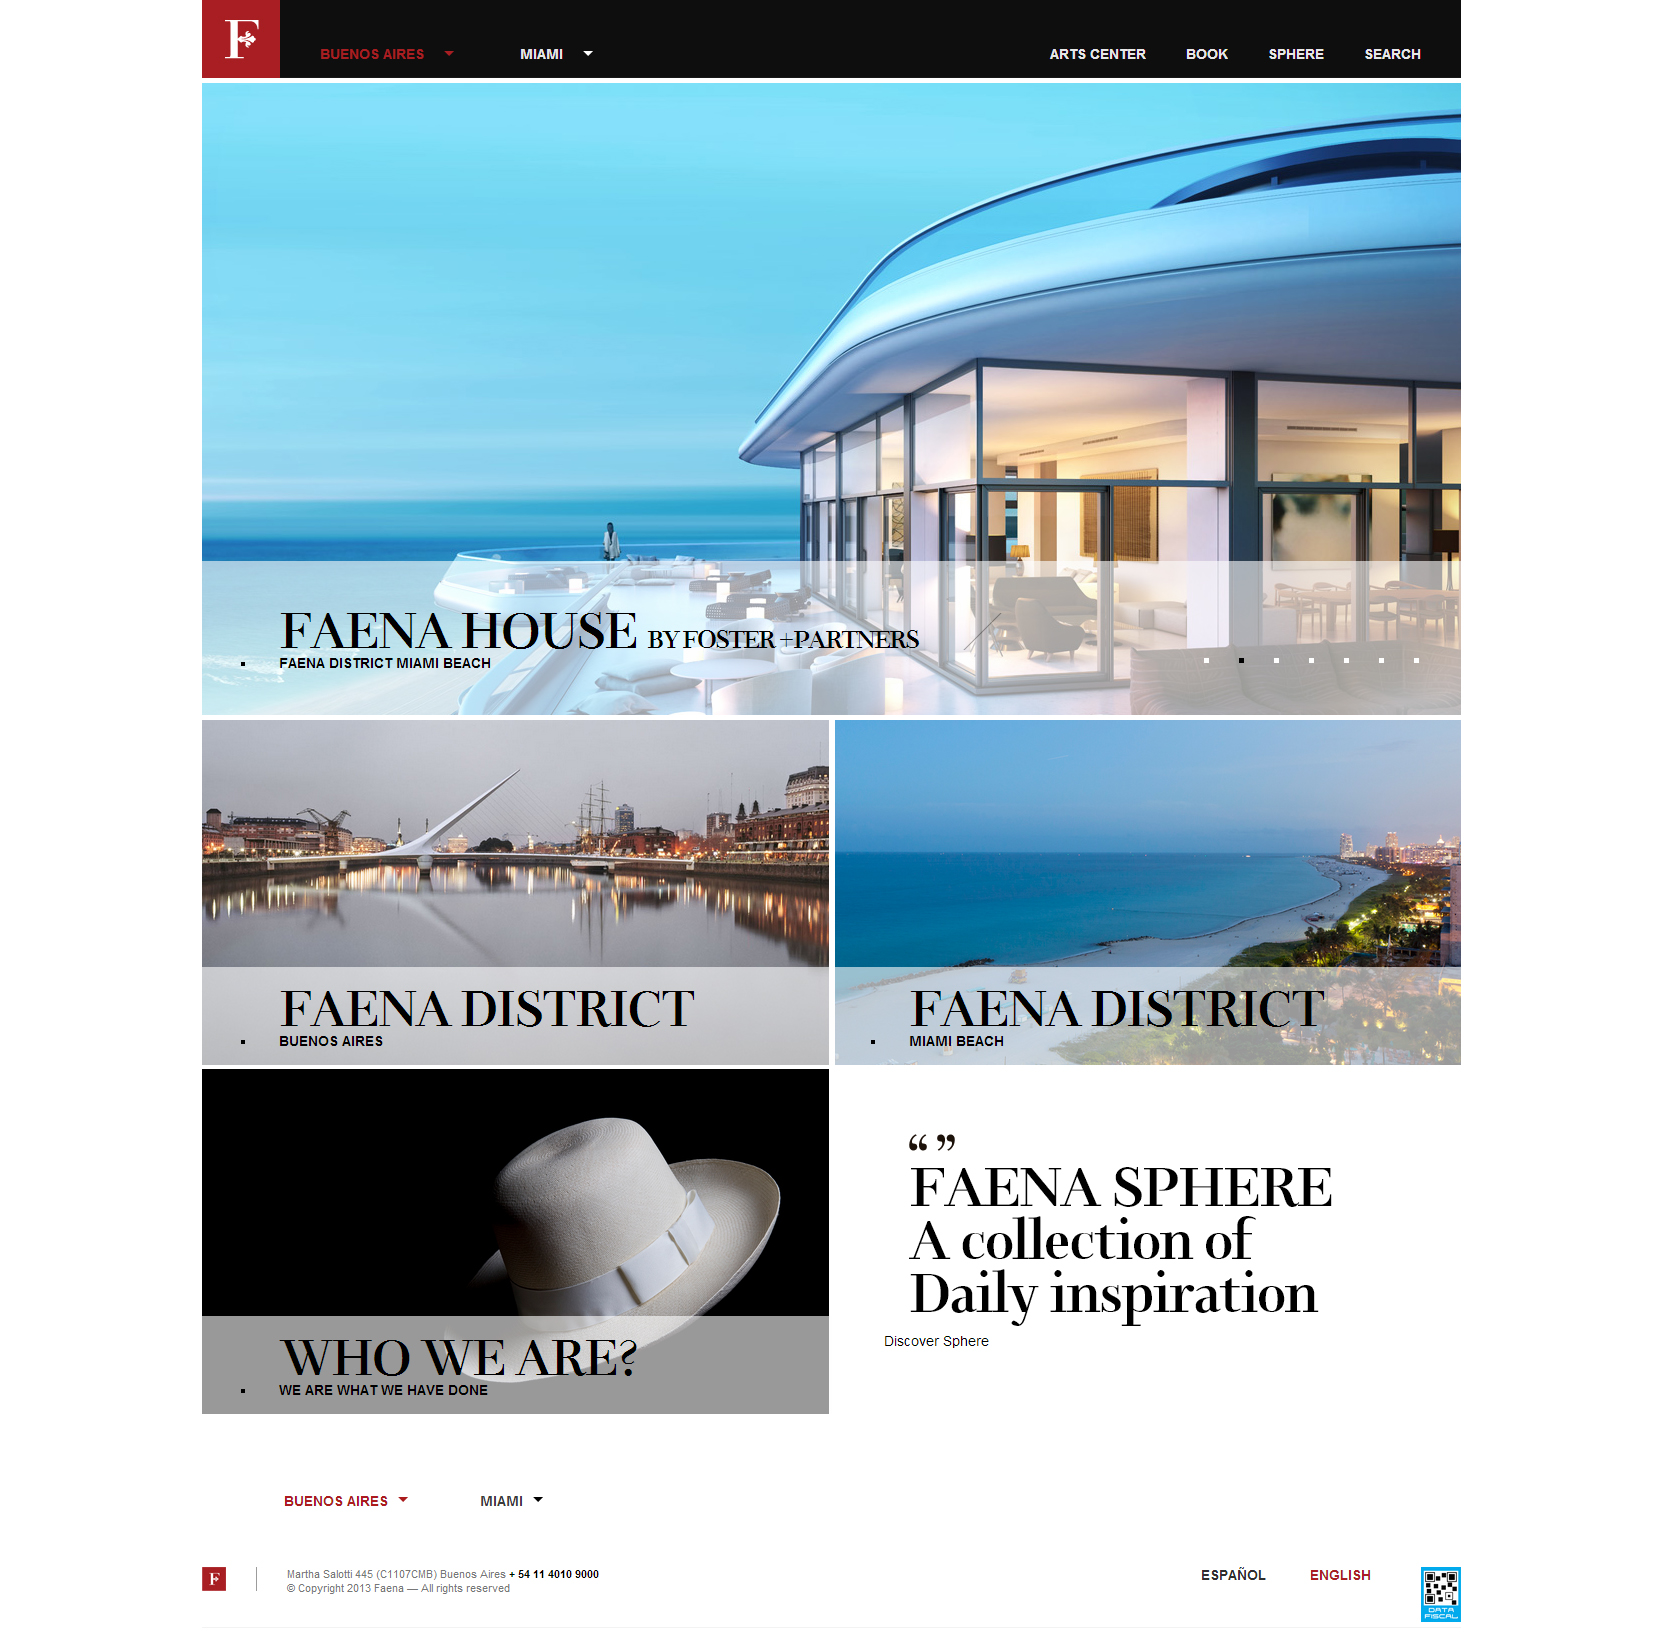 Website Inspiration - Faena Hotel